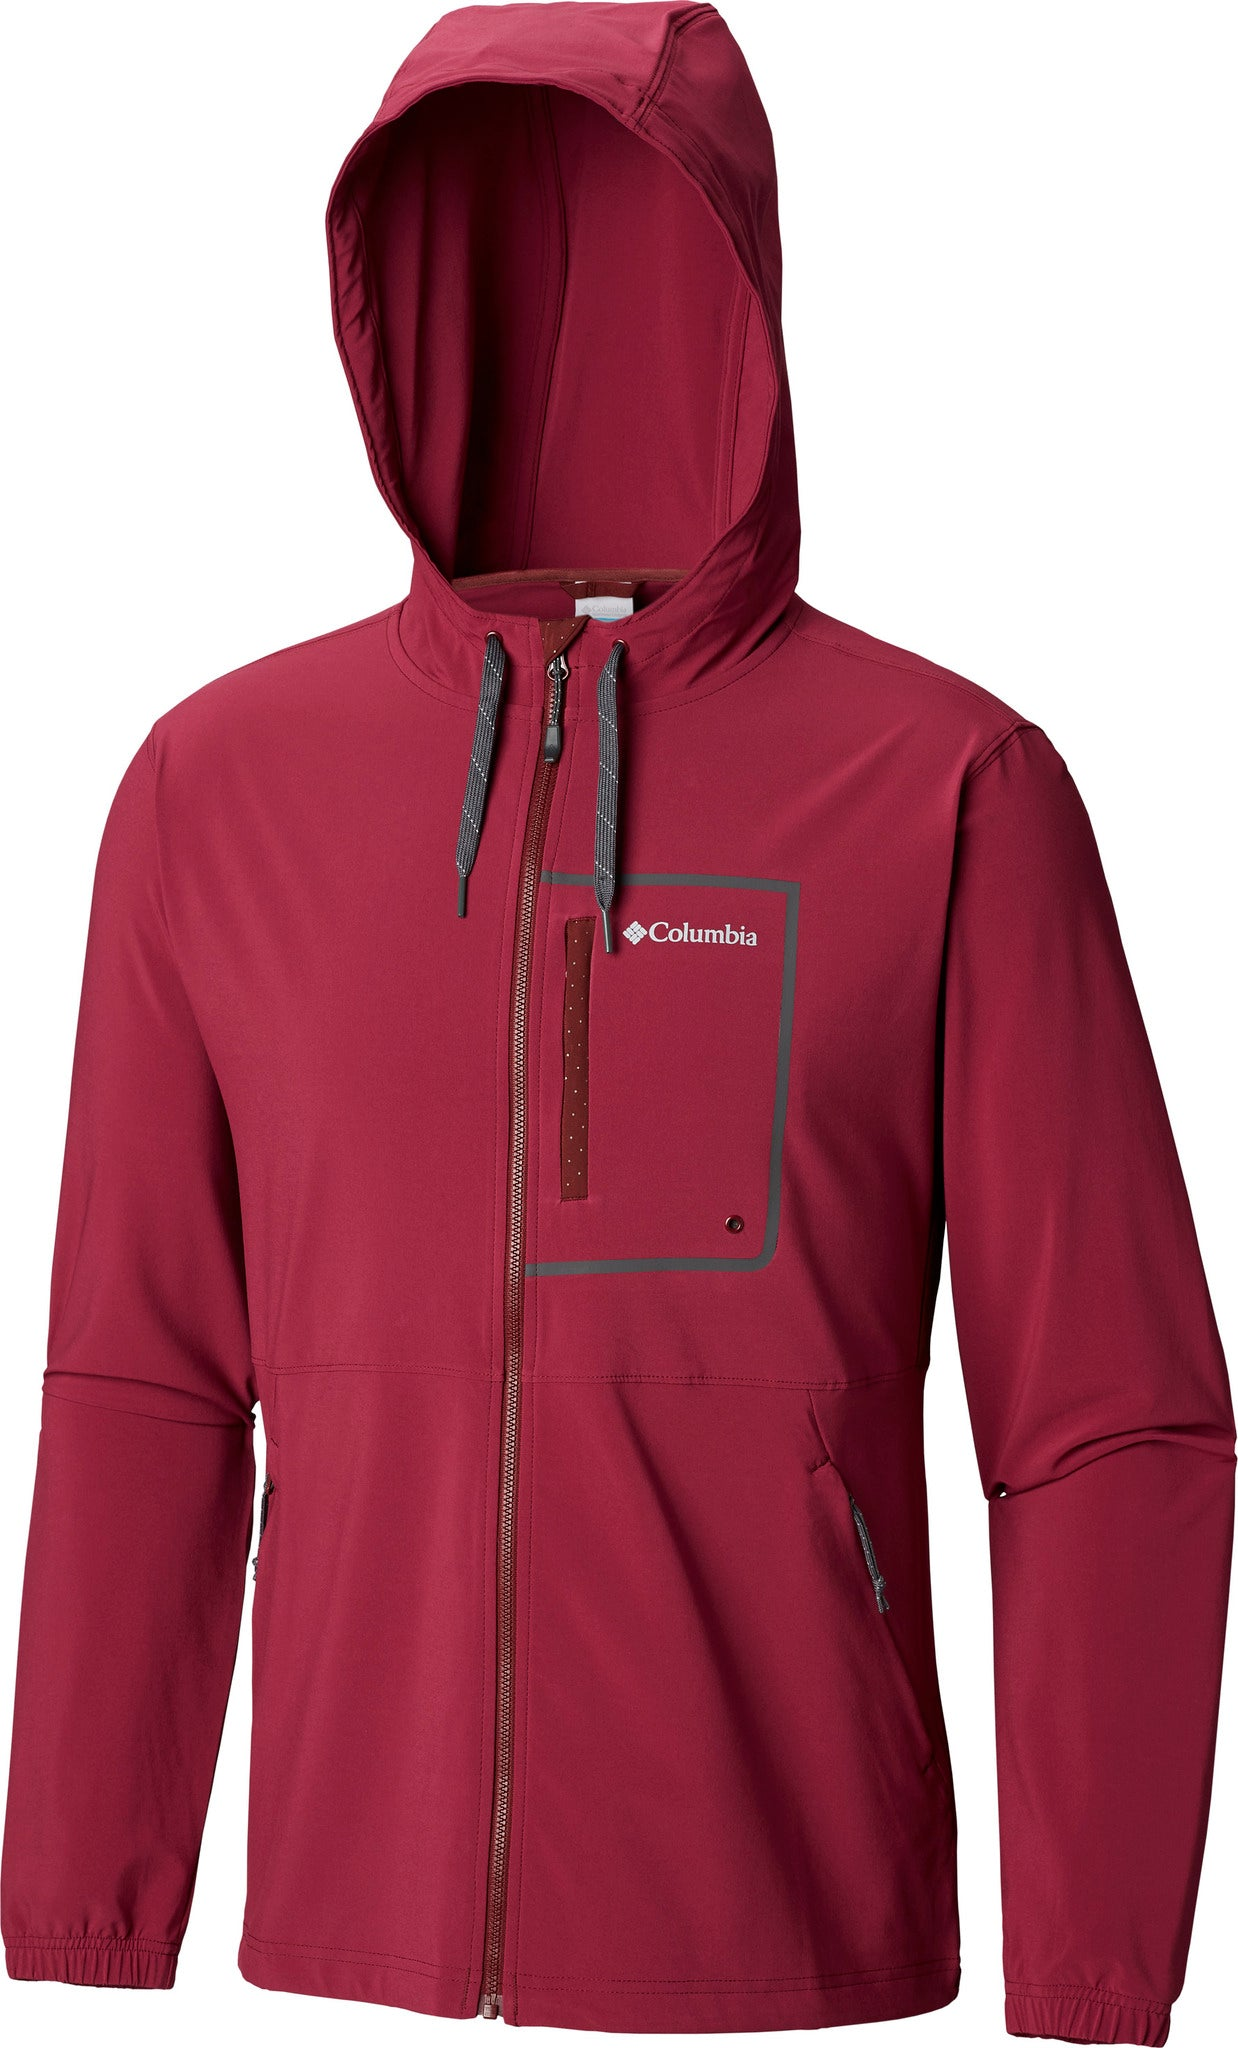 ca587699a Columbia Outdoor Elements Hoodie - Men's | Altitude Sports